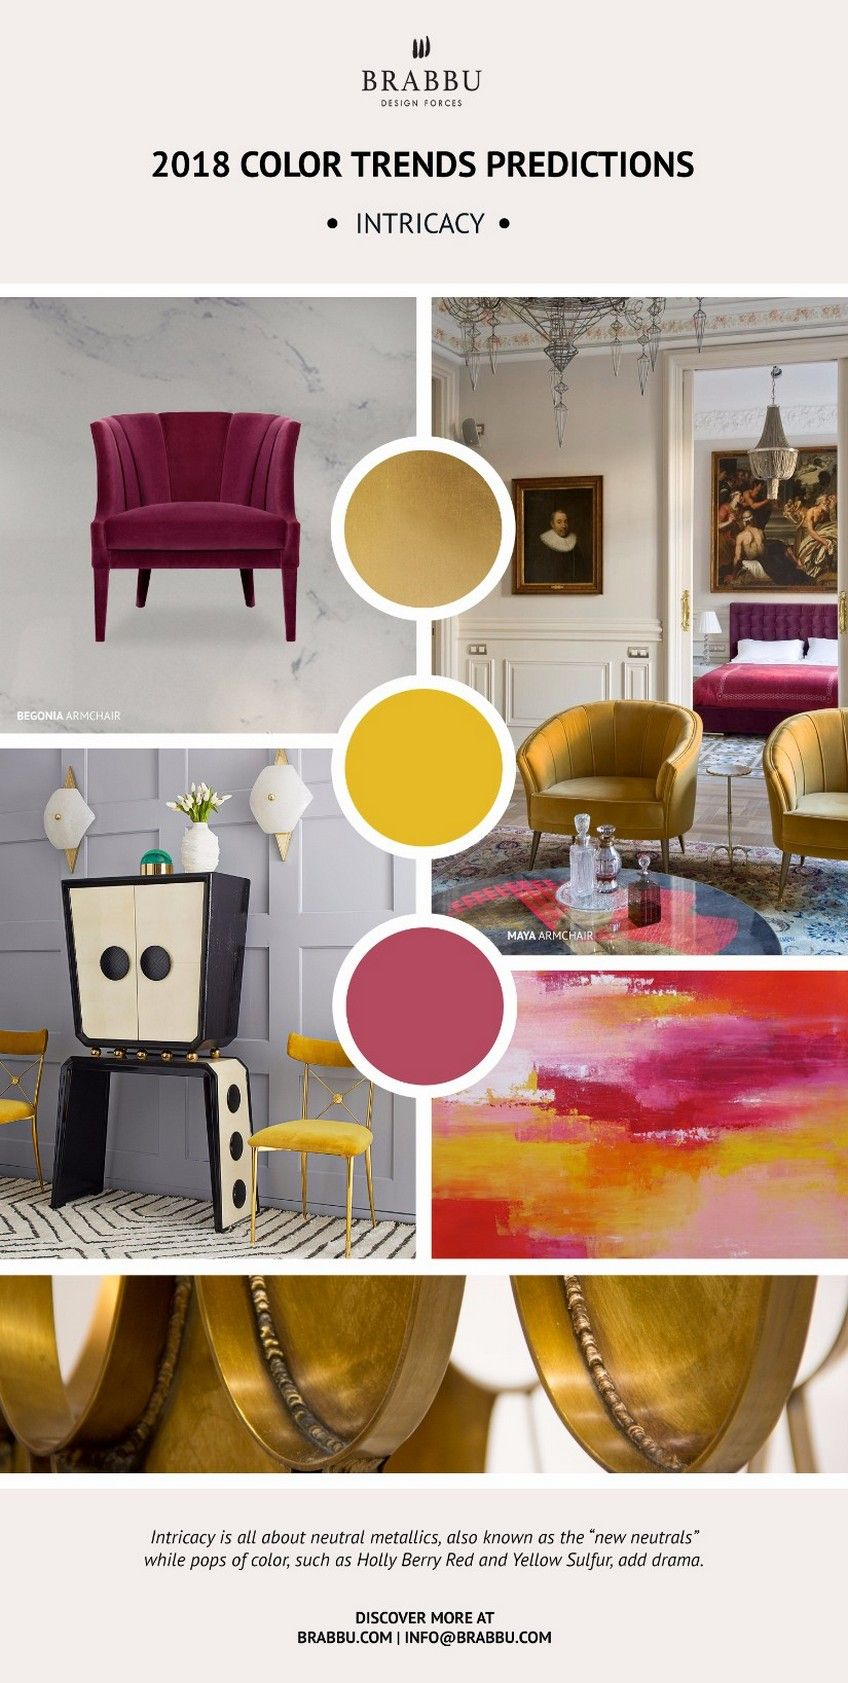 Interior Design Ideas Following Pantone's 2018 Color Trends